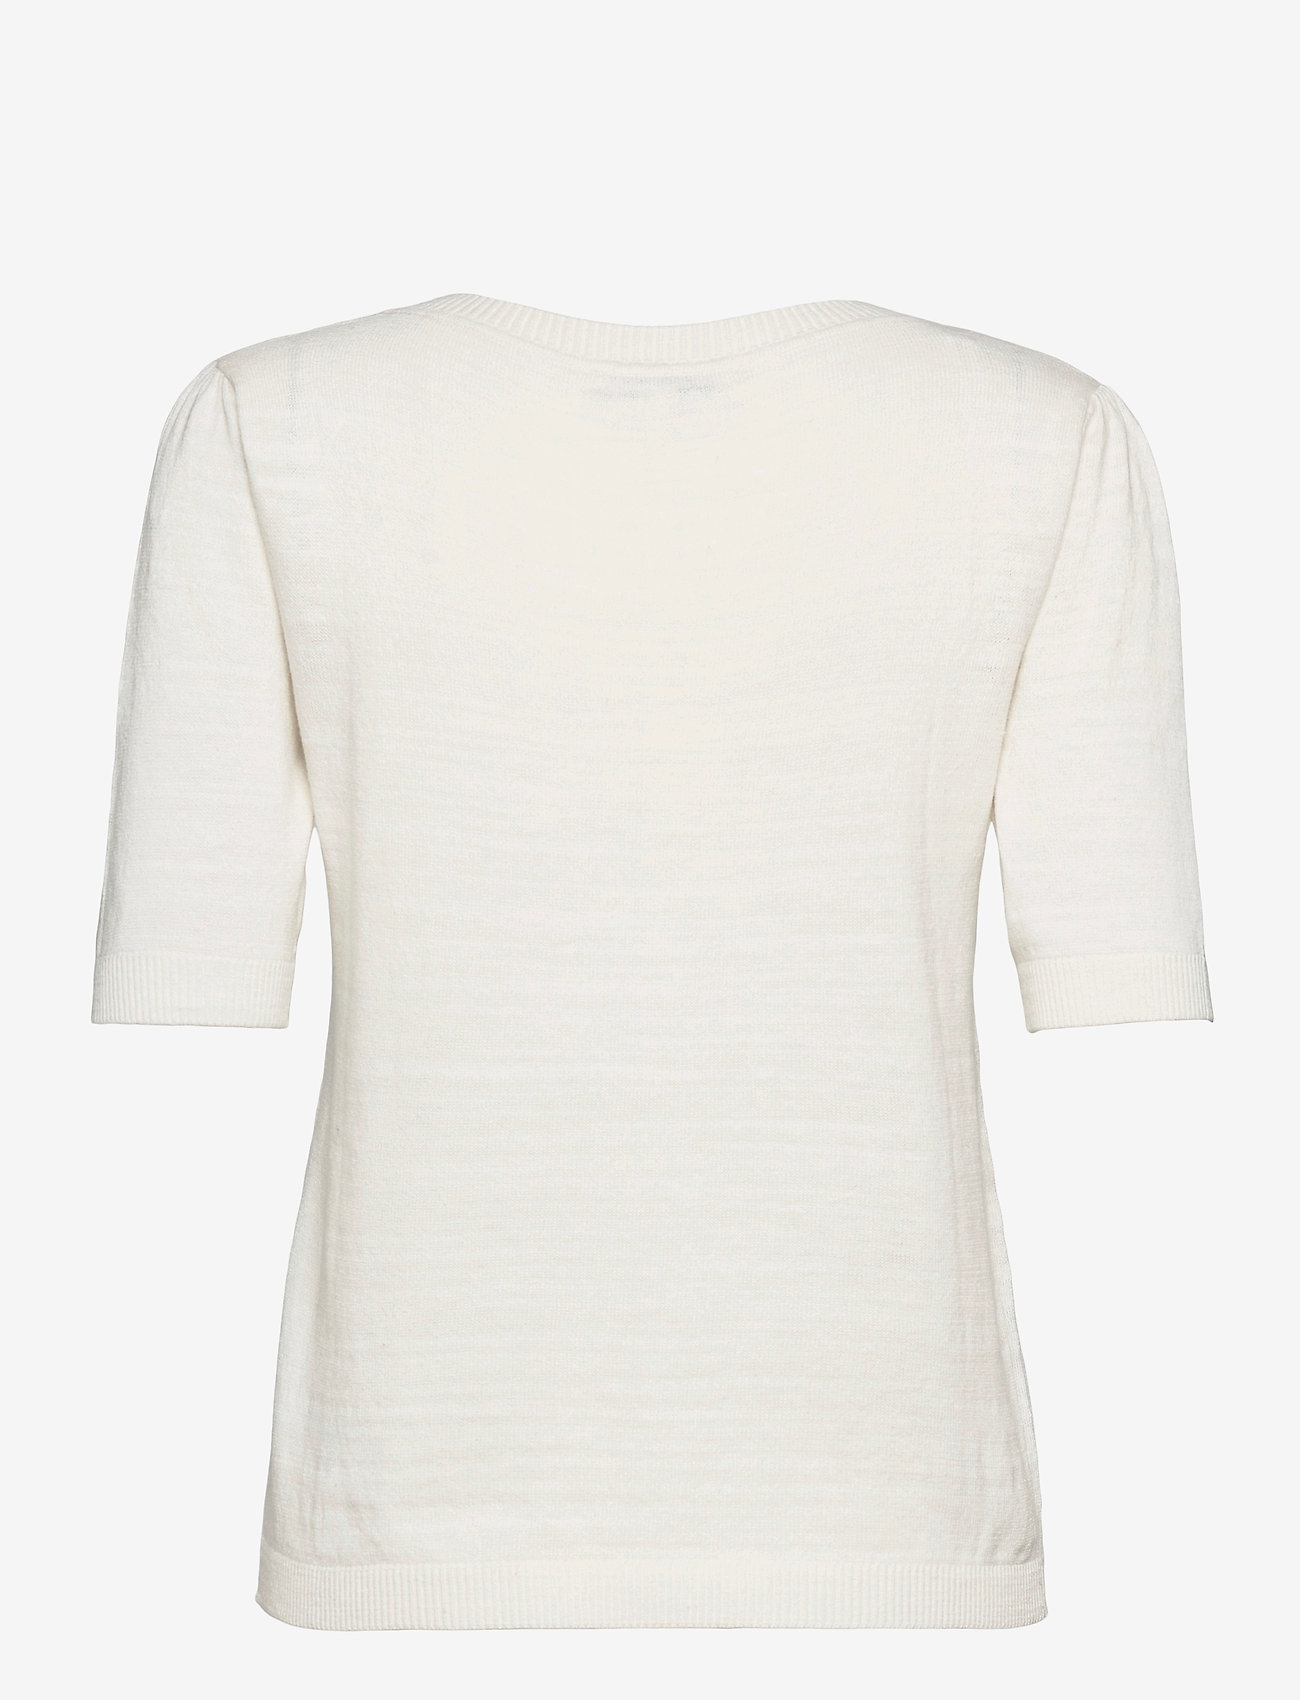 Esprit Casual - Sweaters - strikkede toppe - off white - 1